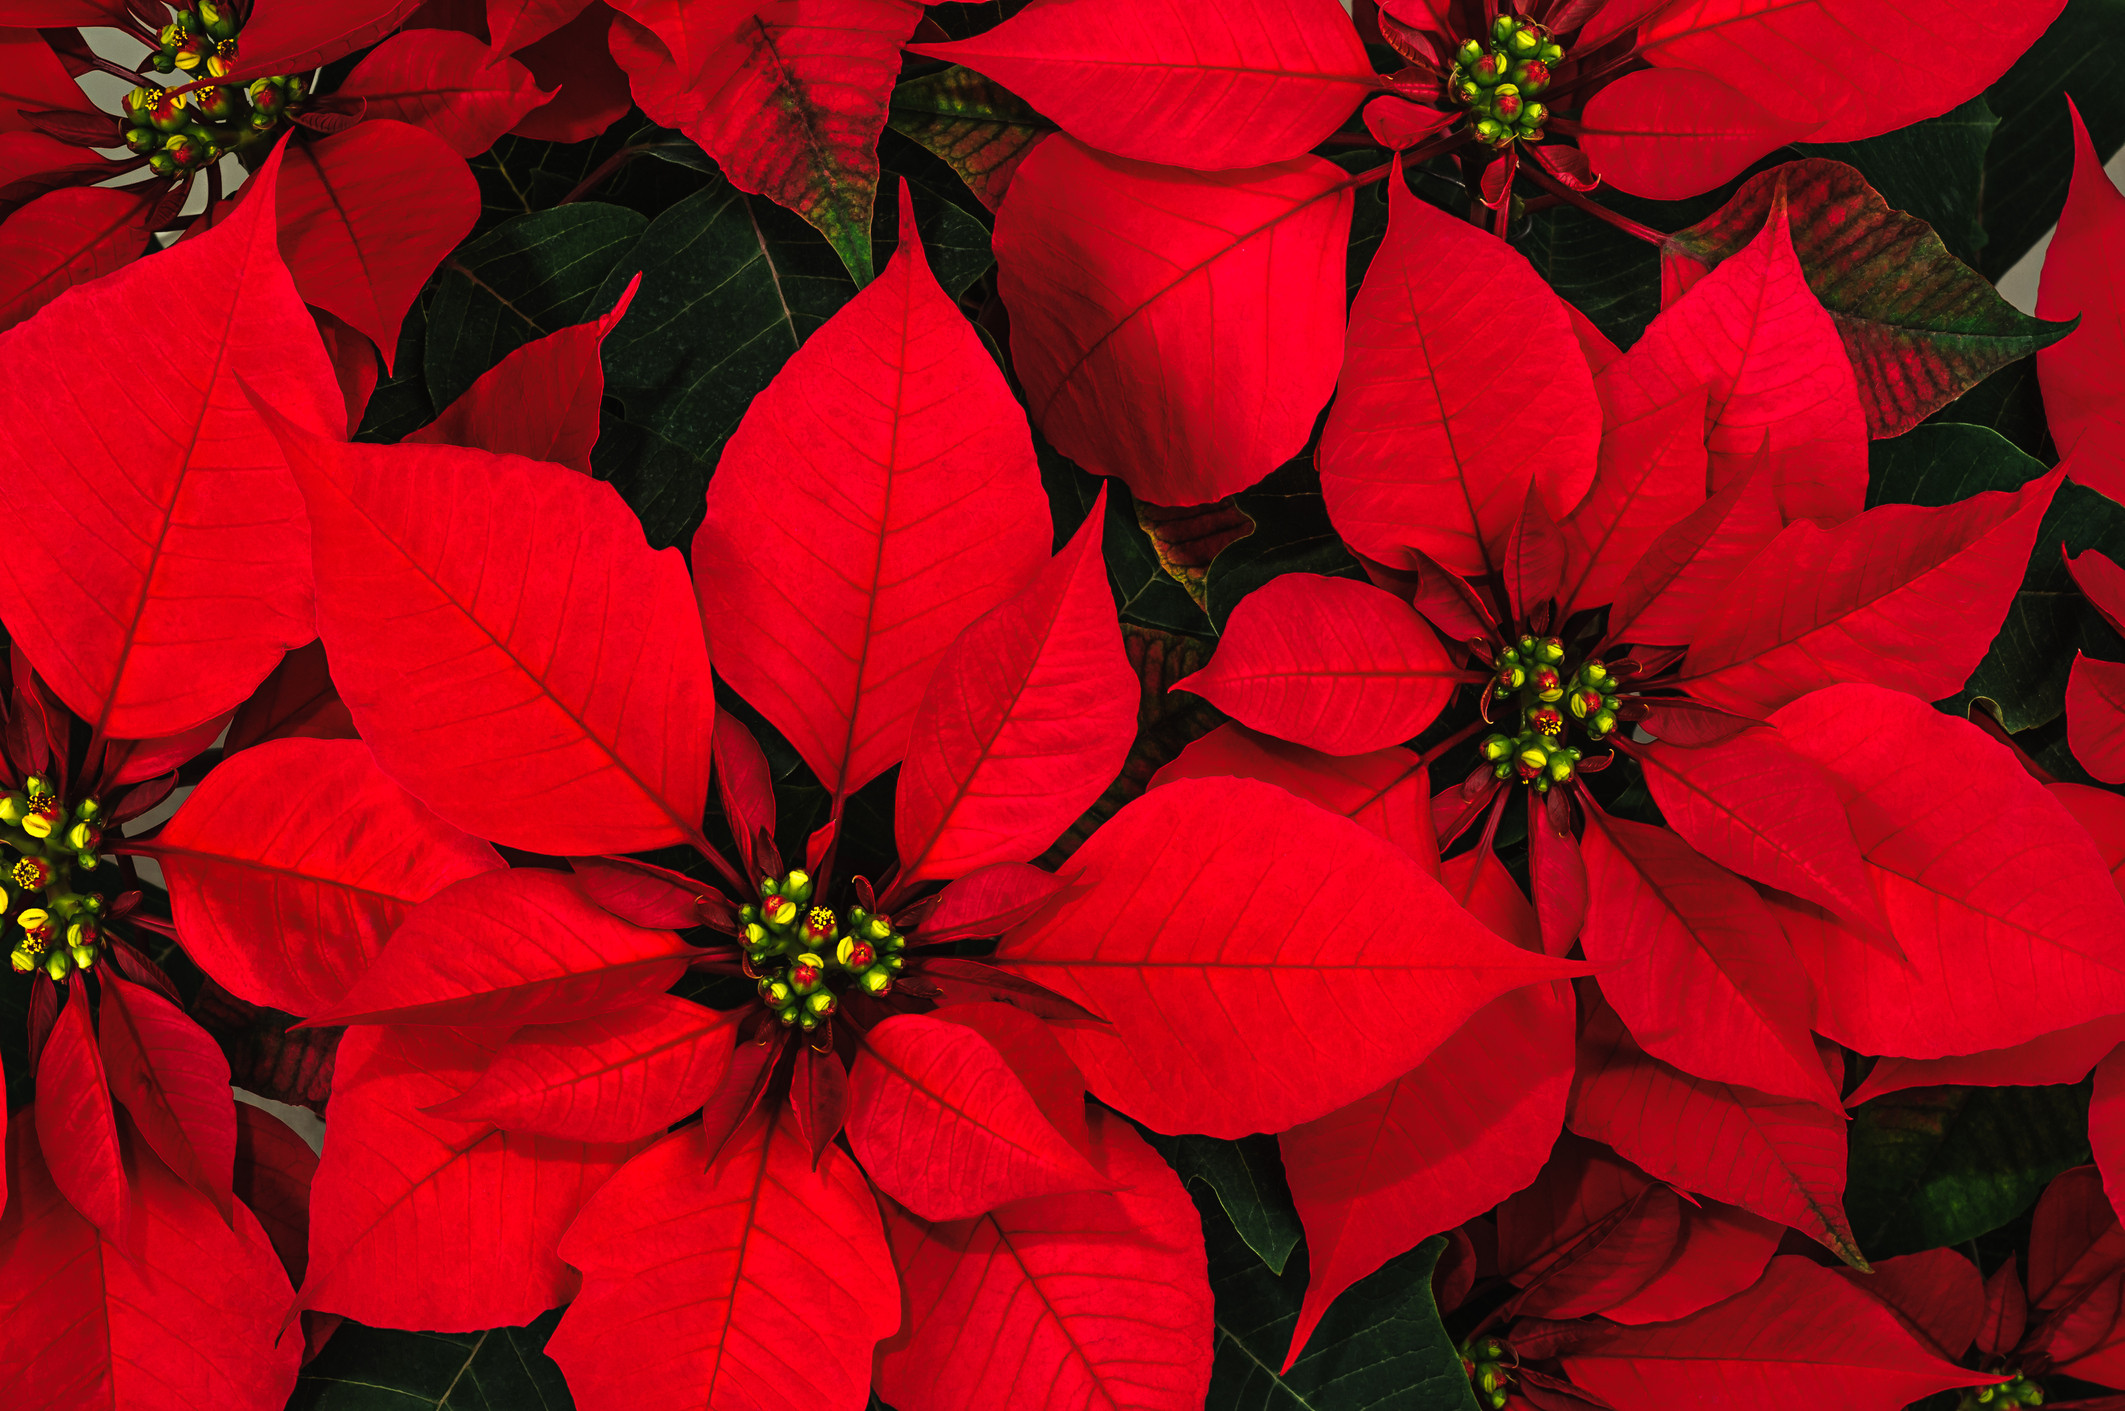 Red Christmas Flower  The Origins of the Poinsettia A Long Strange Tale